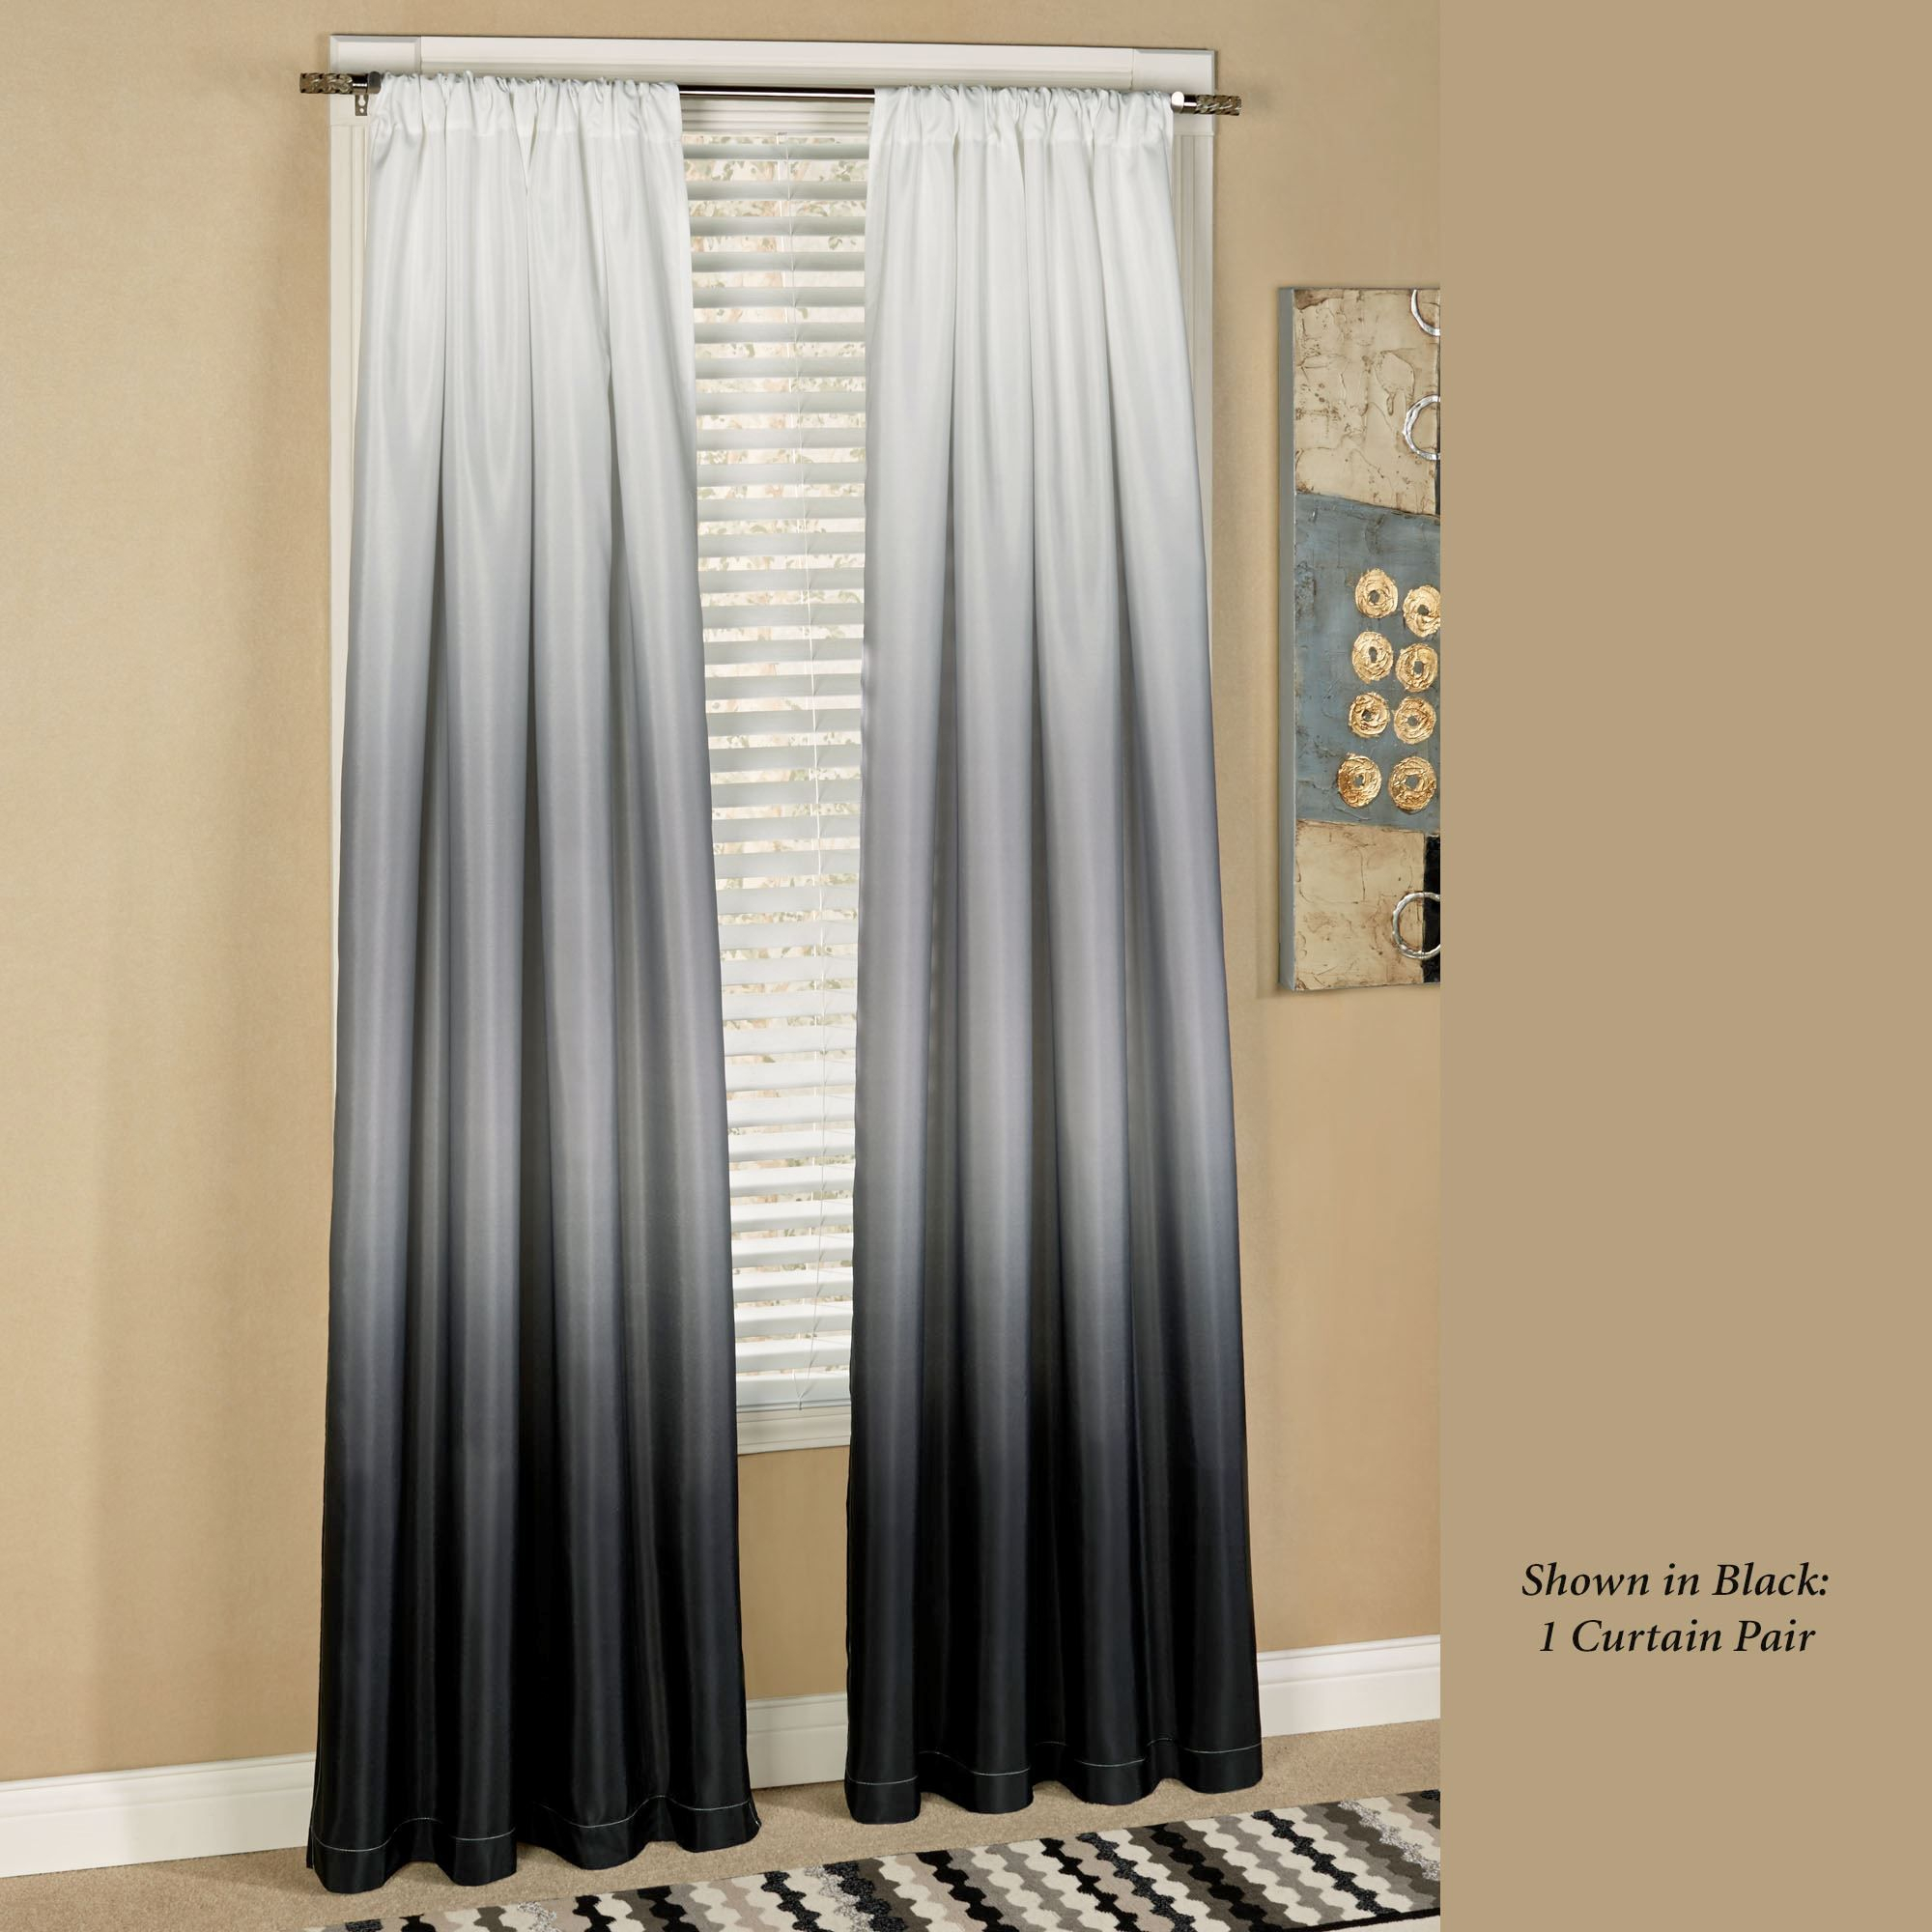 Shades Ombre Curtains | Bedroom Decor In 2019 | Ombre With Ombre Embroidery Curtain Panels (View 13 of 20)